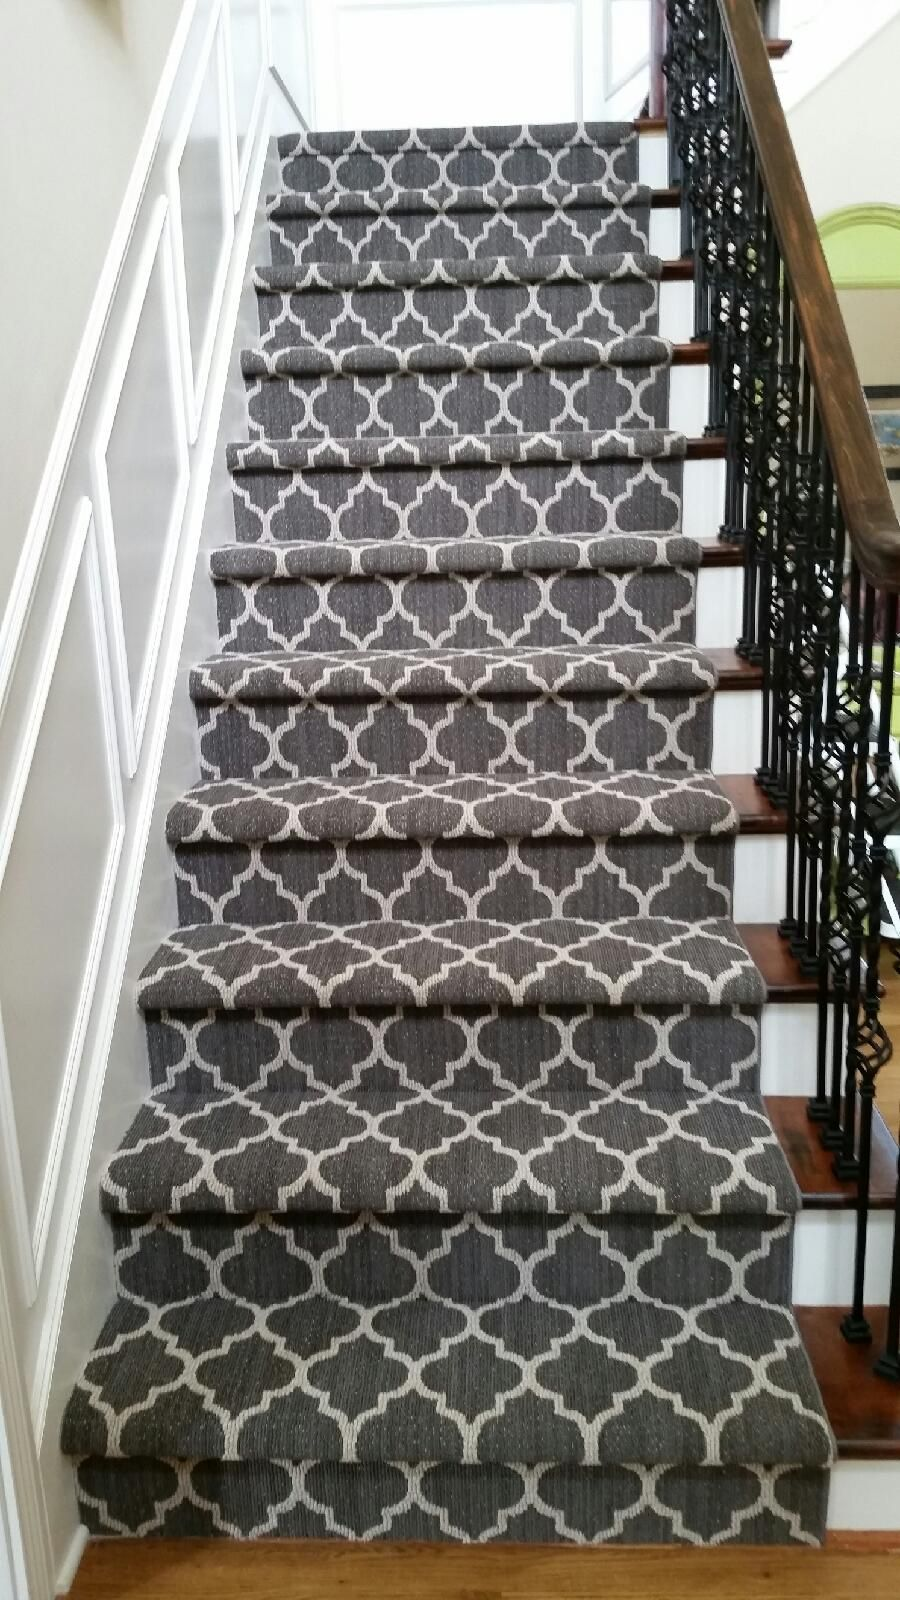 Pattern Carpet For Stairs Carpet Stairs Patterned Stair Carpet Patterned Carpet